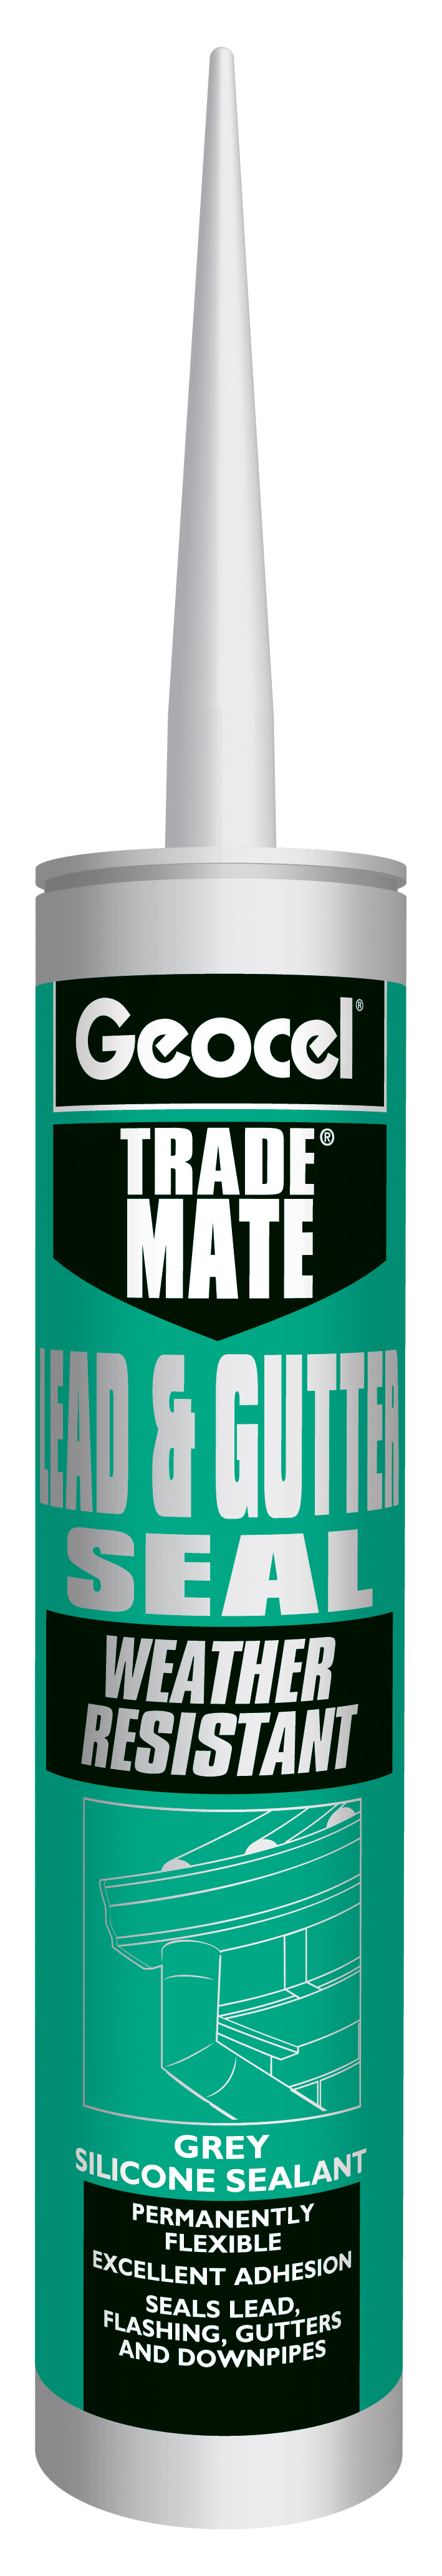 Geocel Lead & Gutter Seal Sealant